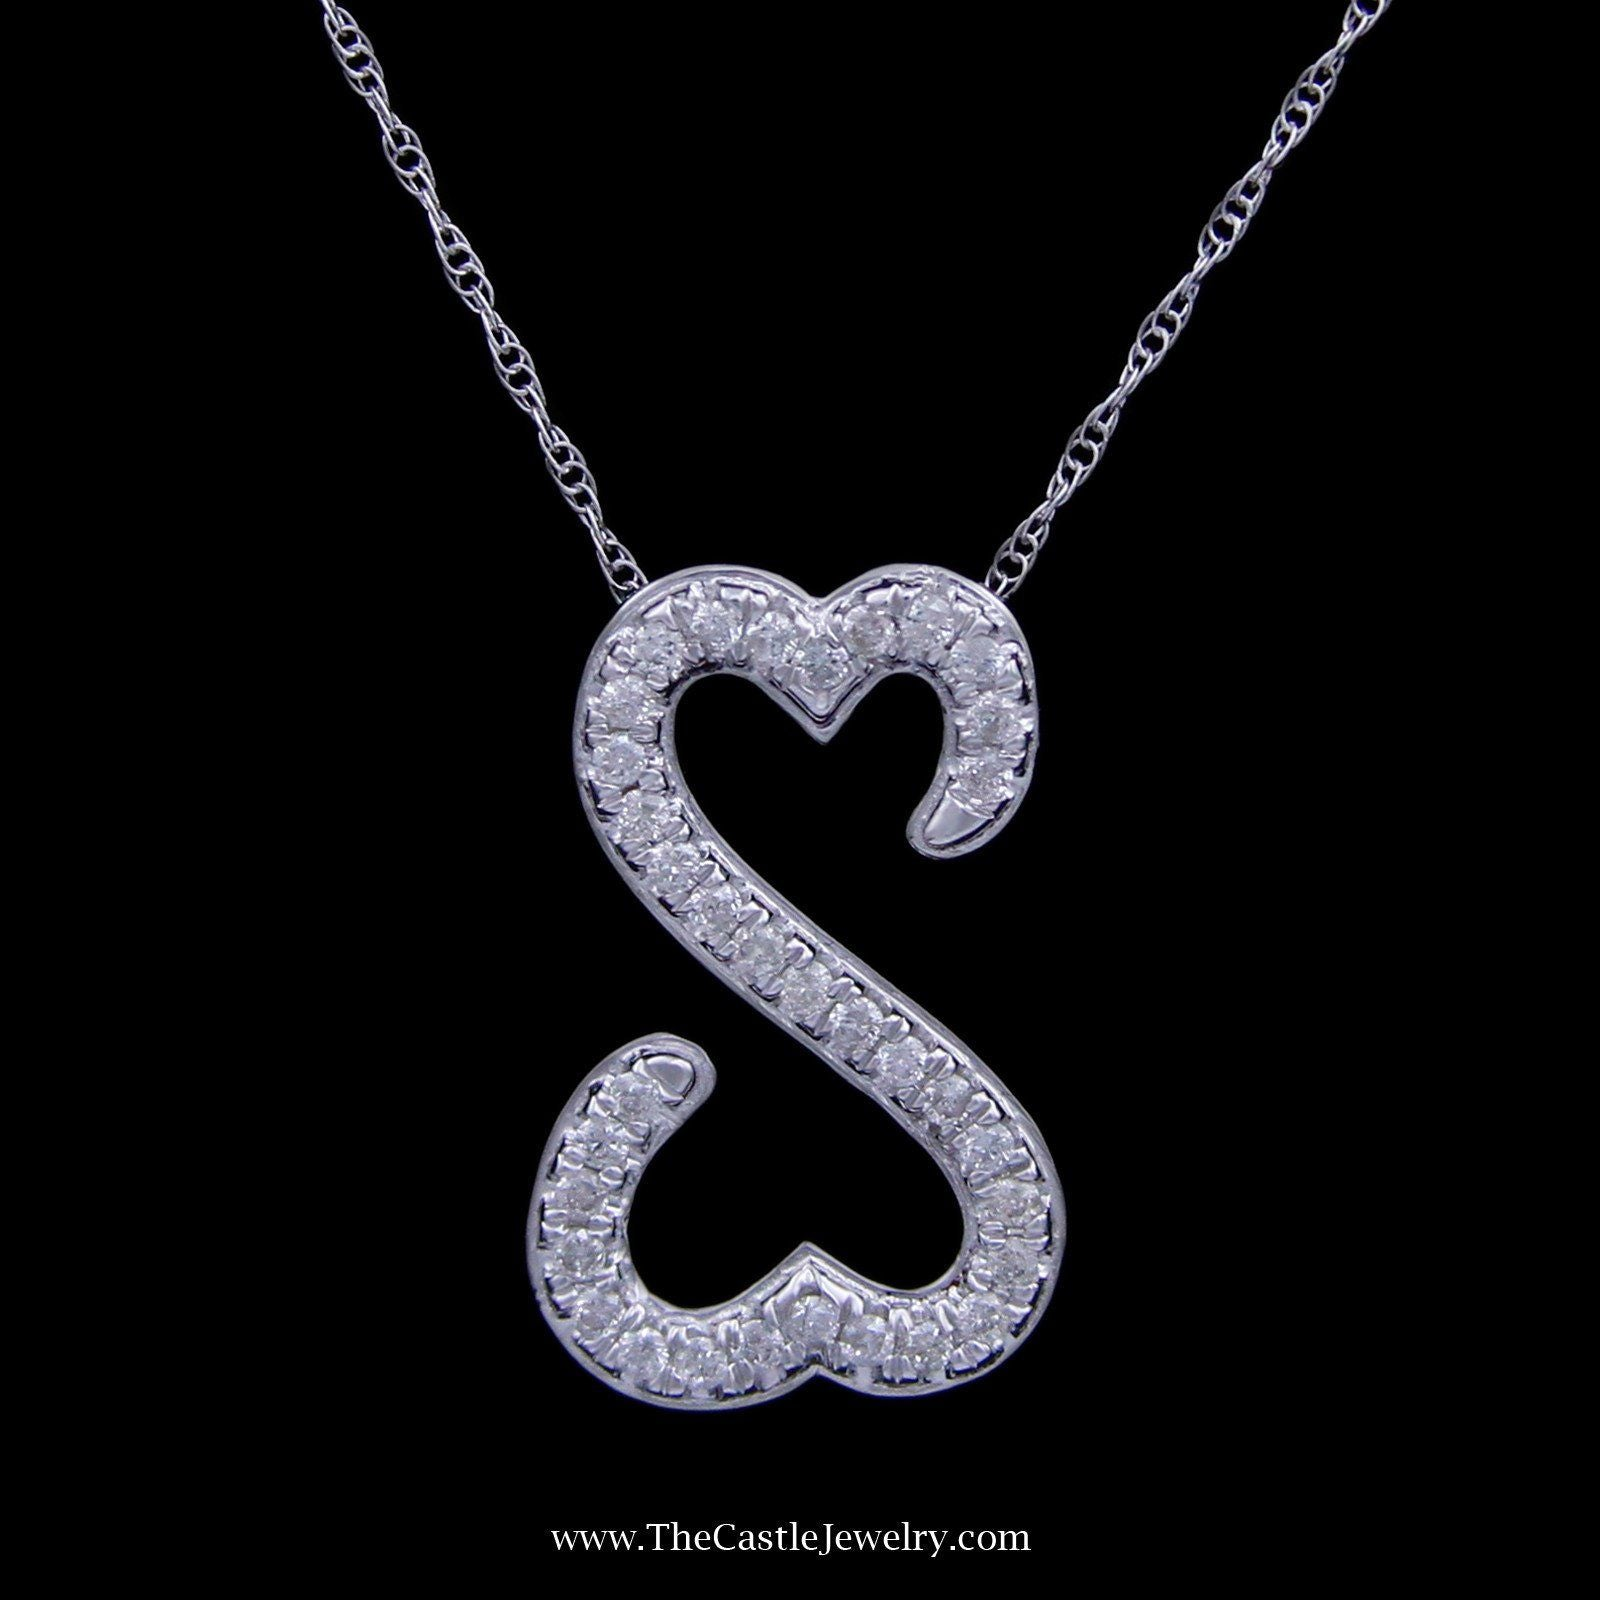 Special! .25cttw Double Heart Round Brilliant Cut Diamond Pendant Crafted in 10k White Gold